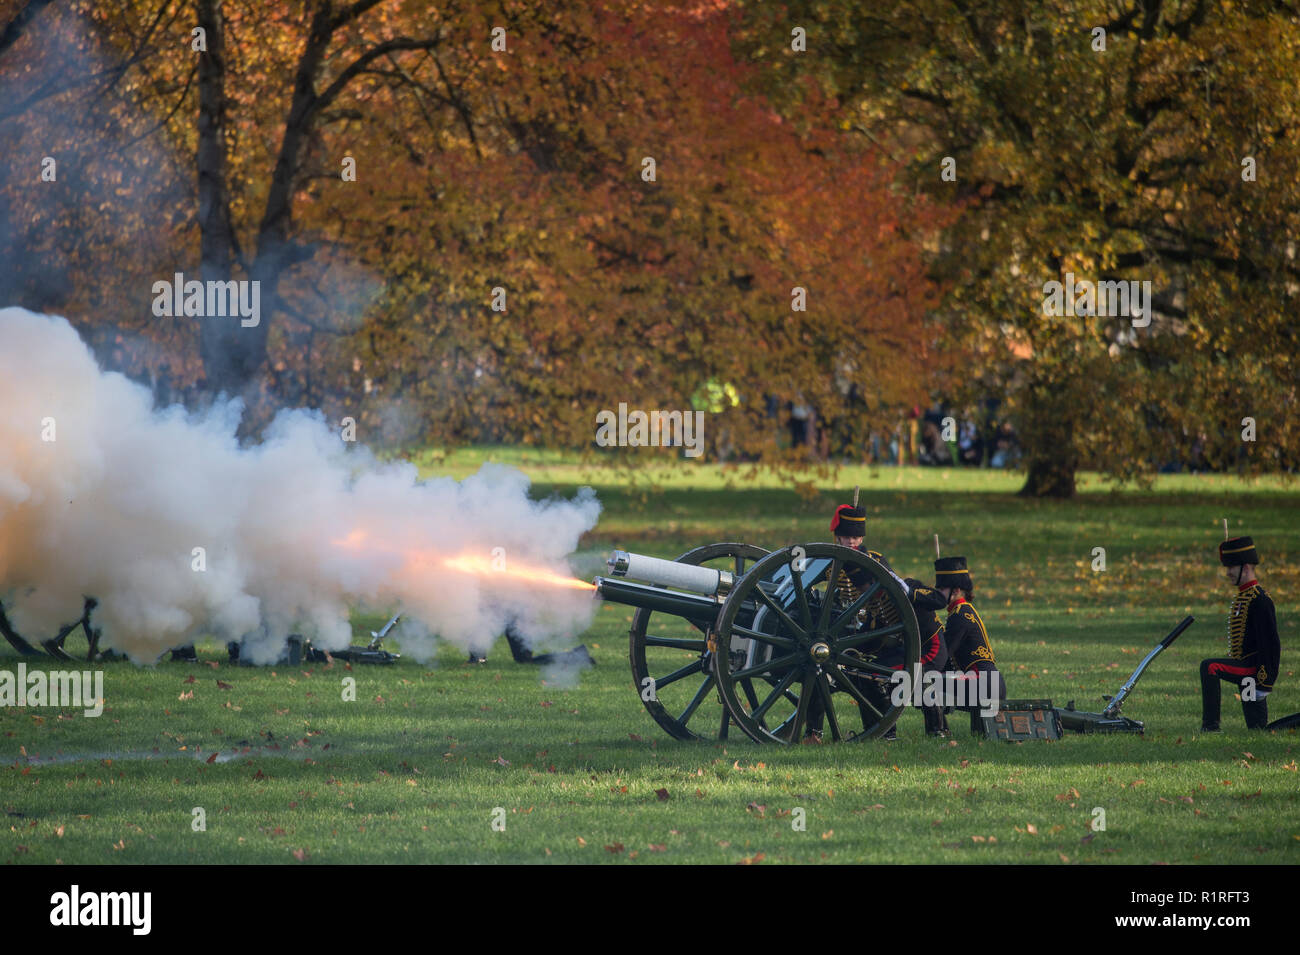 Green Park, London, UK. 14 November, 2018. In honour of His Royal Highness The Prince of Wales's 70th birthday, The King's Troop Royal Horse Artillery, the ceremonial saluting battery of Her Majesty's Household Division, fire a 41-gun Royal Salute from autumnal Green Park at 12 midday on Wednesday 14th November. Credit: Malcolm Park/Alamy Live News. - Stock Image